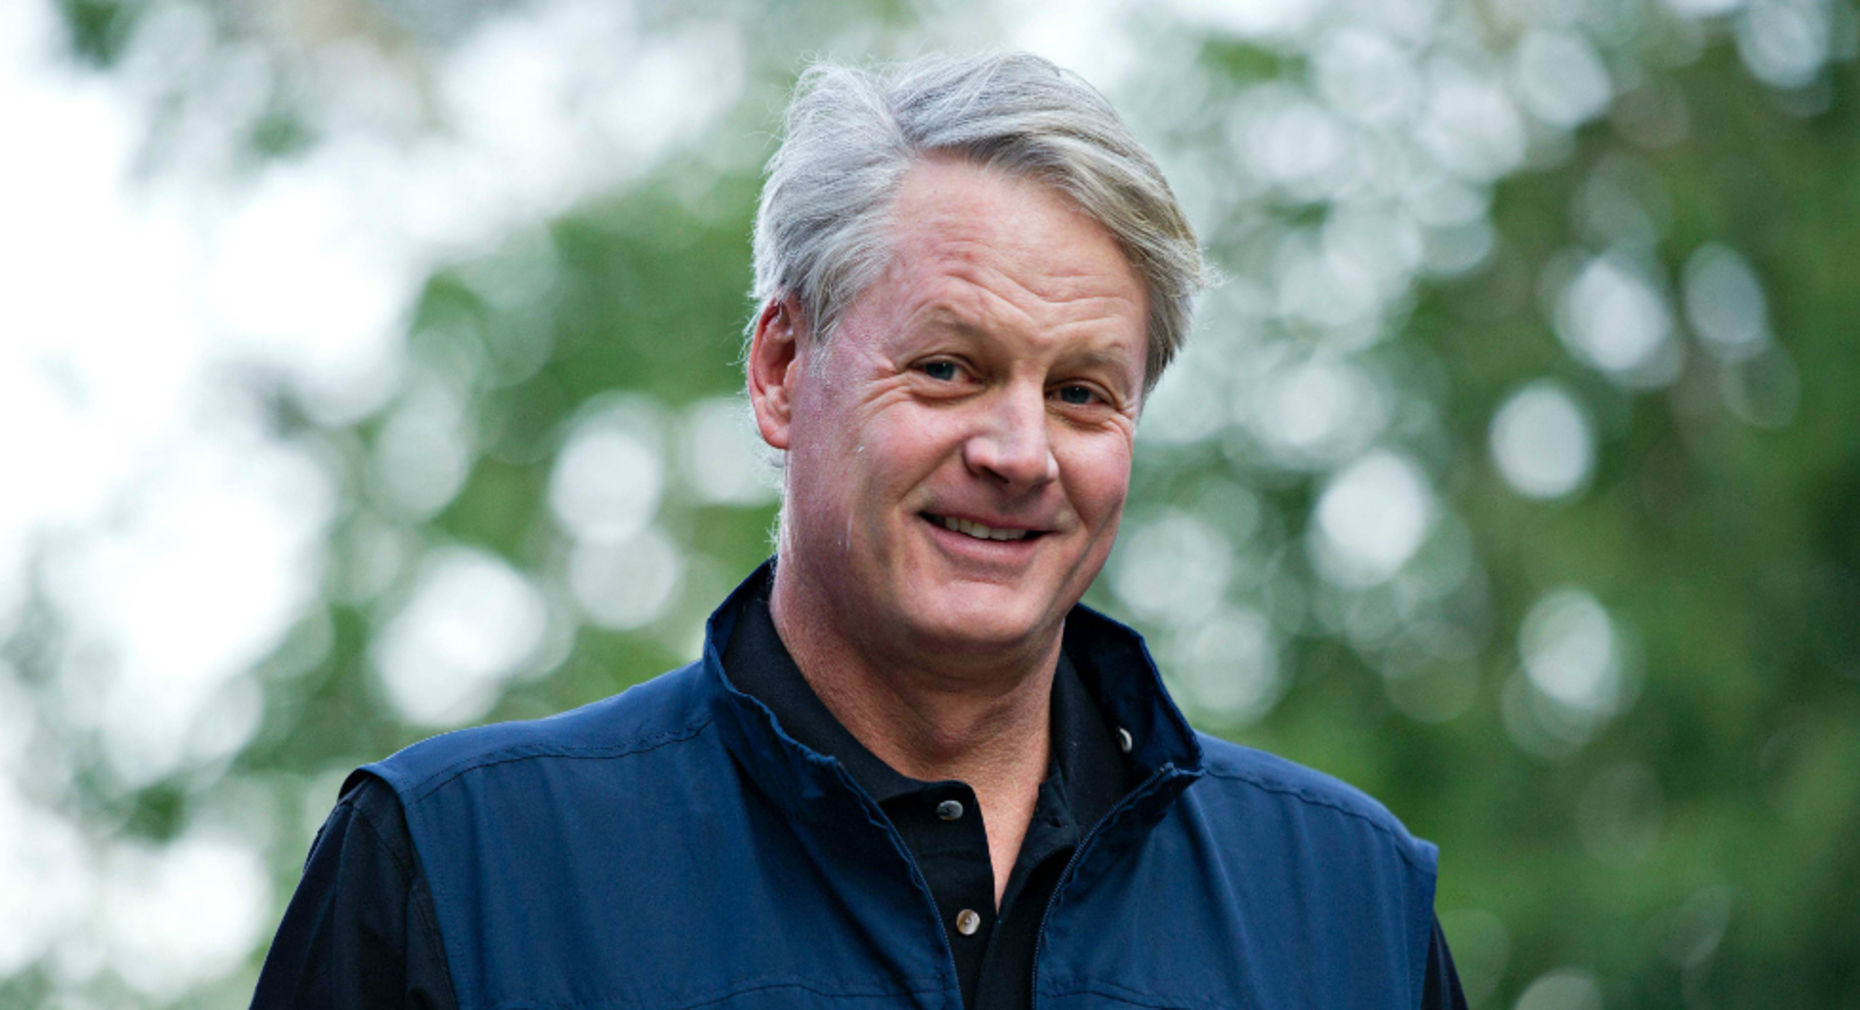 Ebay CEO John Donahoe. Photo by Bloomberg.